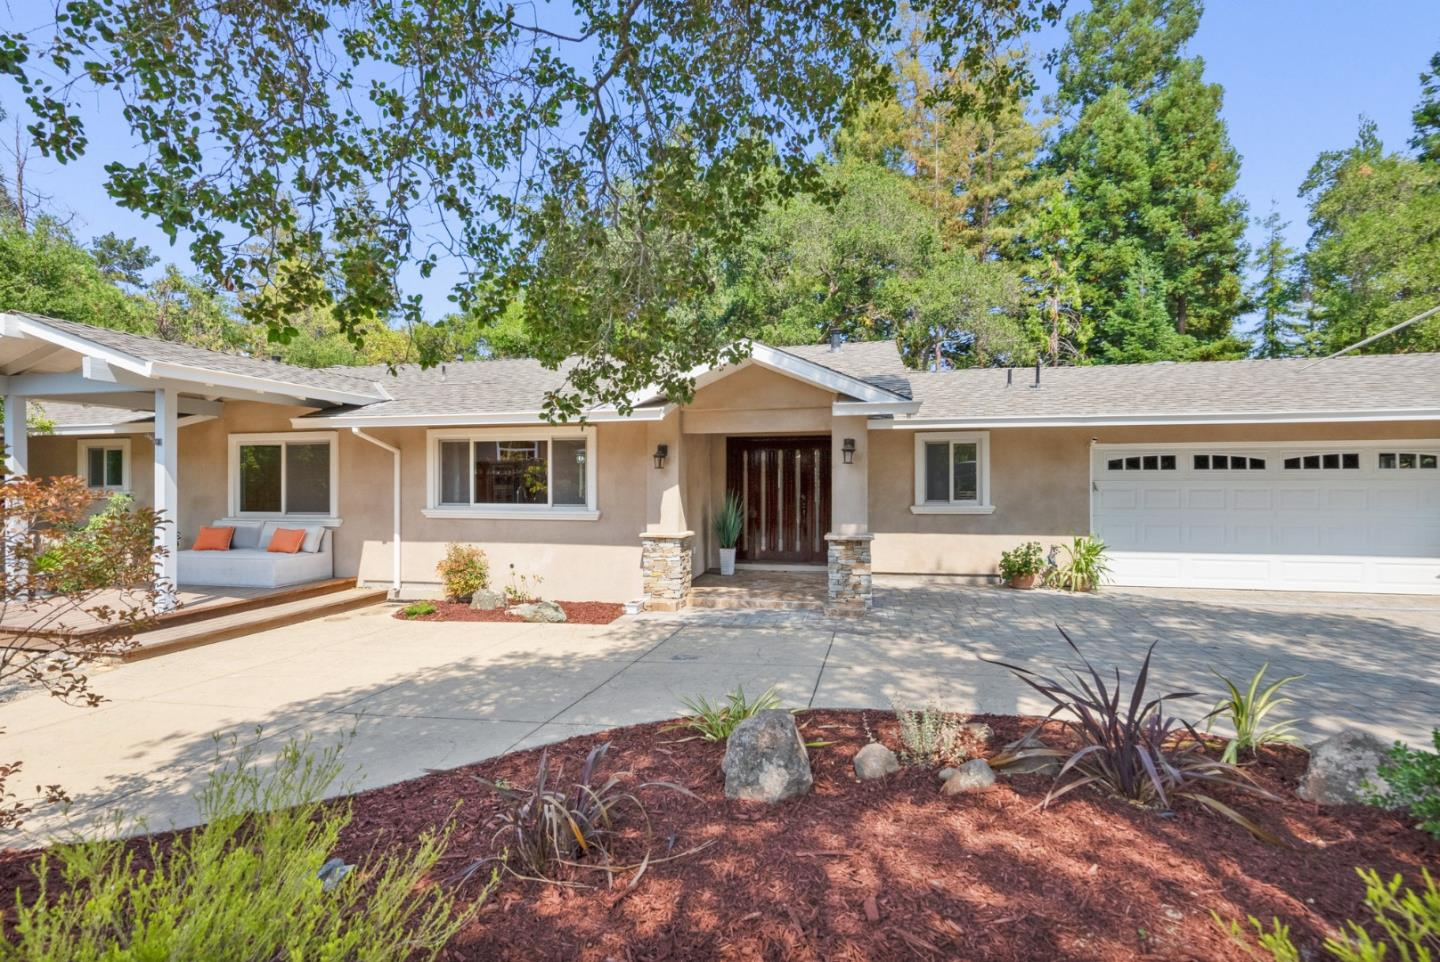 Welcome to 14527 Westcott Drive, a home located at the back of cul de sac offering a park-like setting on over ½ acre, with sunny patios & trails that meander through tiered gardens. The house was completely remolded in 2017. The kitchen featuring Quartz counters, a glass-tile backsplash, an oversized island, and SS appliances that include a 5-burner range. Connected to the open concept living area via a pass-through window that allows light to flow, a bonus room makes a great family room, office, or gym. Wood floors are found throughout, and each common area features a sliding door that connects to outside spaces. Four bedrooms feature recessed lights, and newer bathrooms have on-trend style. A junior suite offers an ensuite bath, and the primary bedroom has deck access, a custom closet, shower w/bench seat & soaking tub. The thriving community is just minutes from schools & downtown Los Gatos and downtown Saratoga.